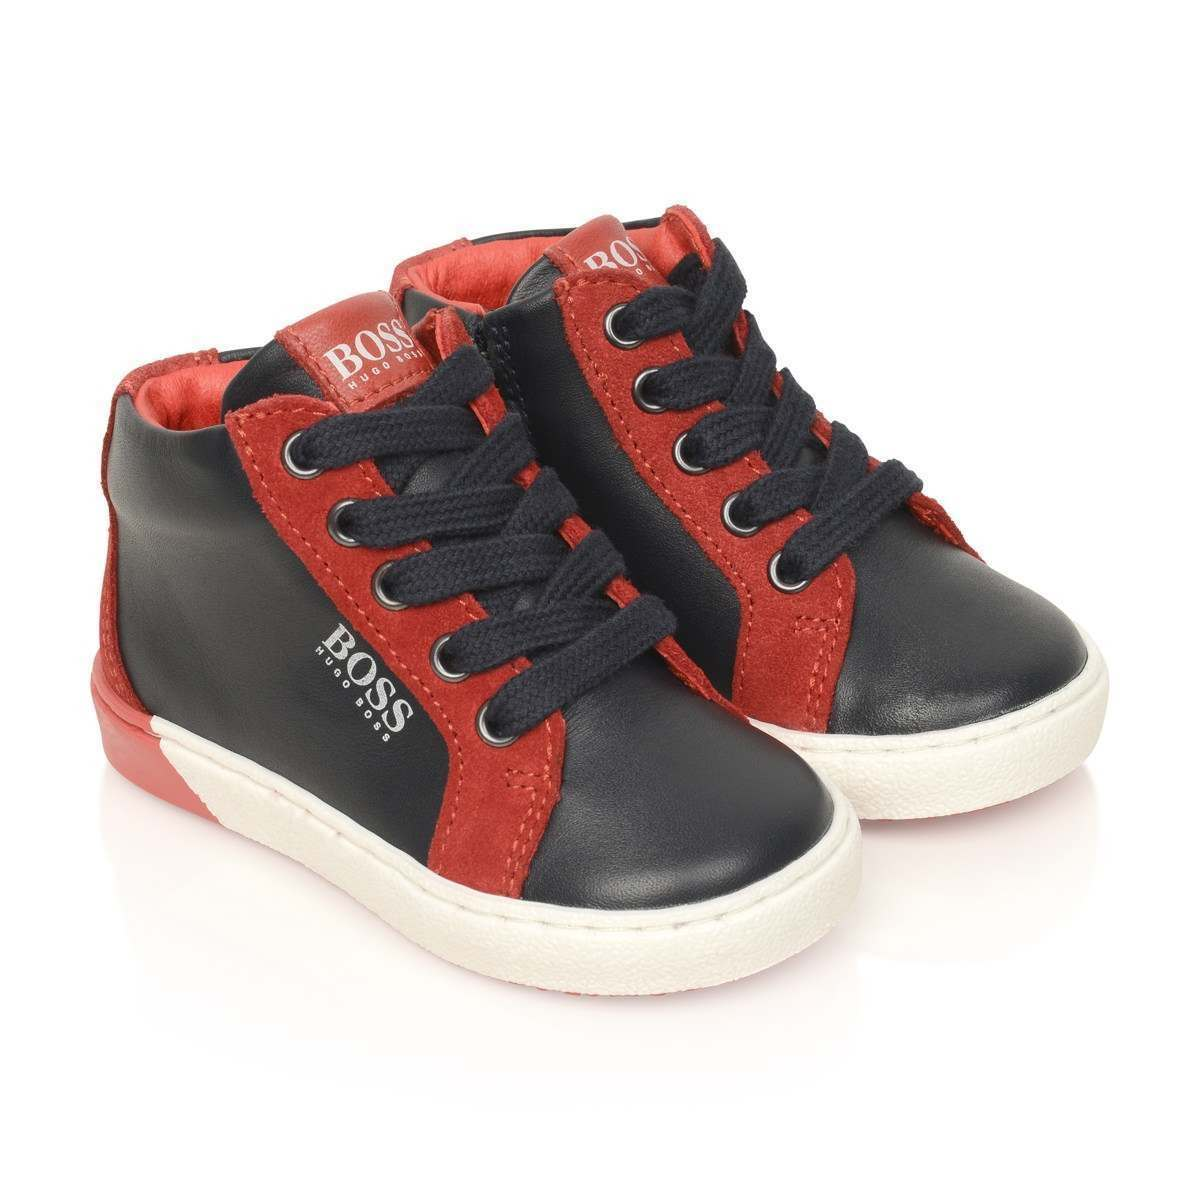 Boss Boy Lace up High Top Sneakers